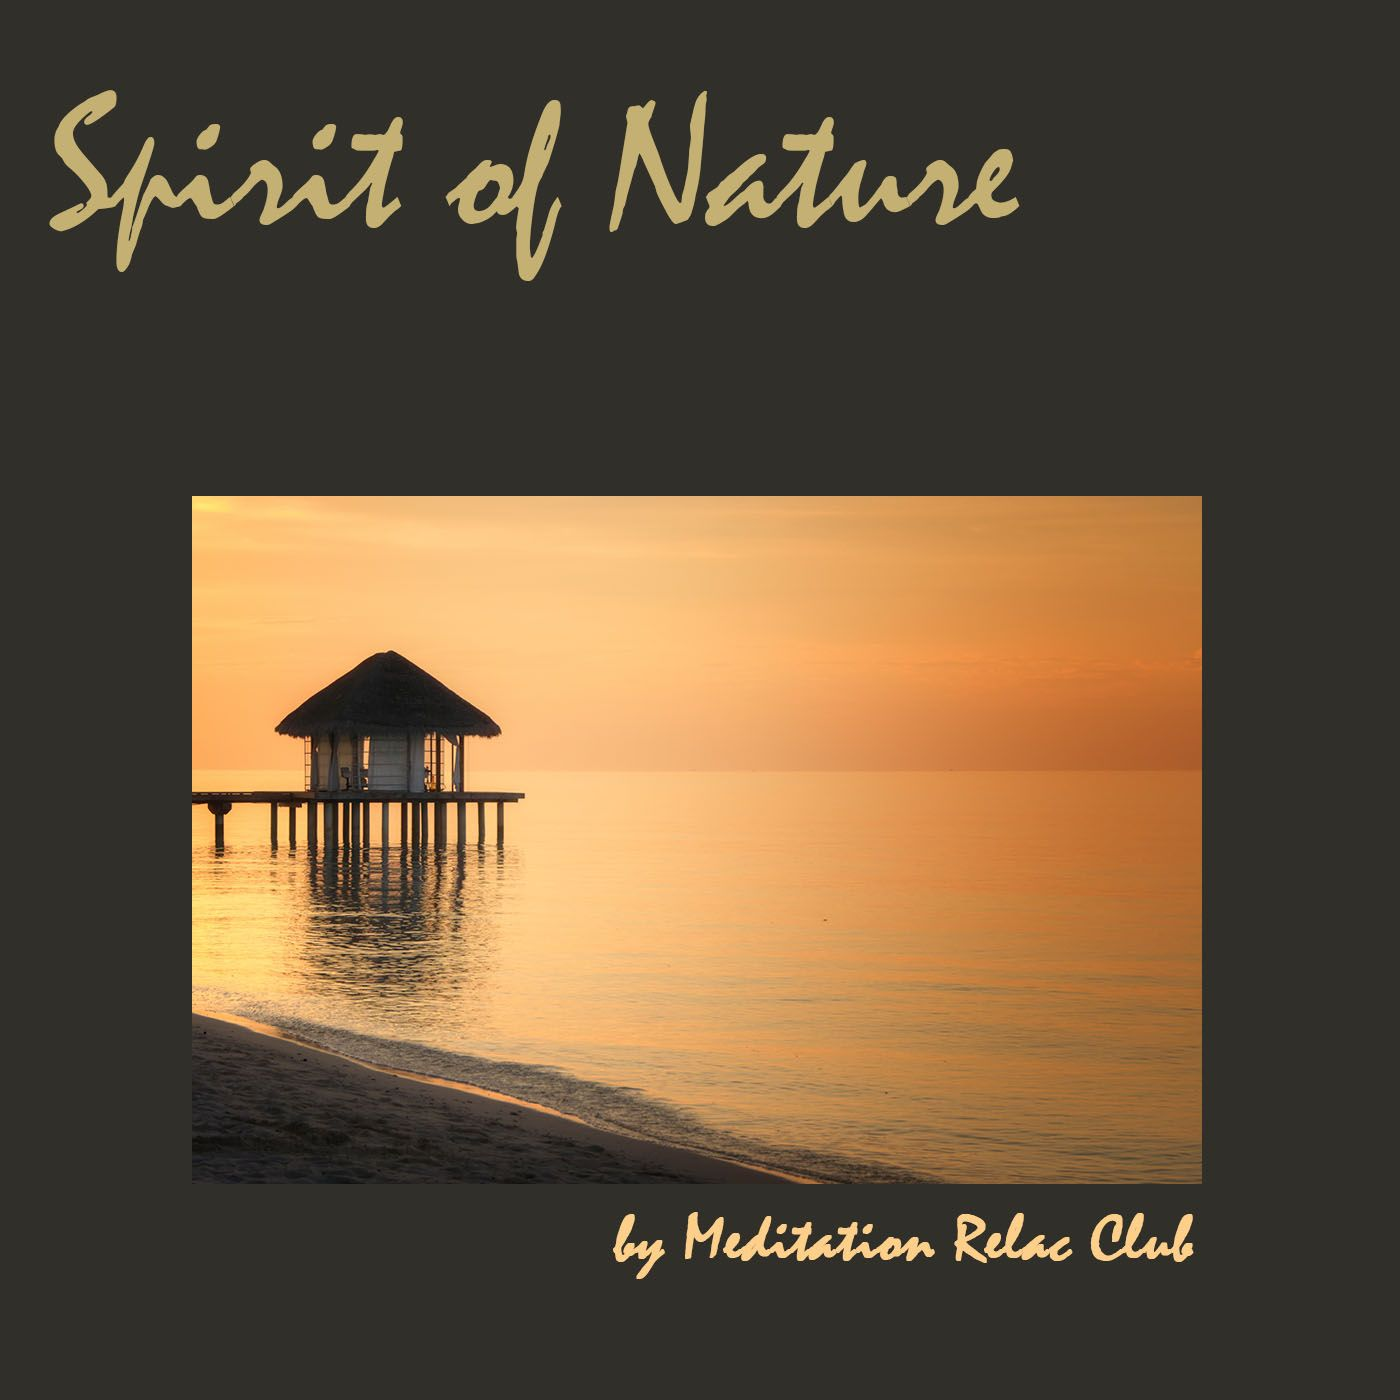 Free mp3 download on meditationrelaxclub.com, free relaxing spa music,  enjoy it now on #SoundCloud